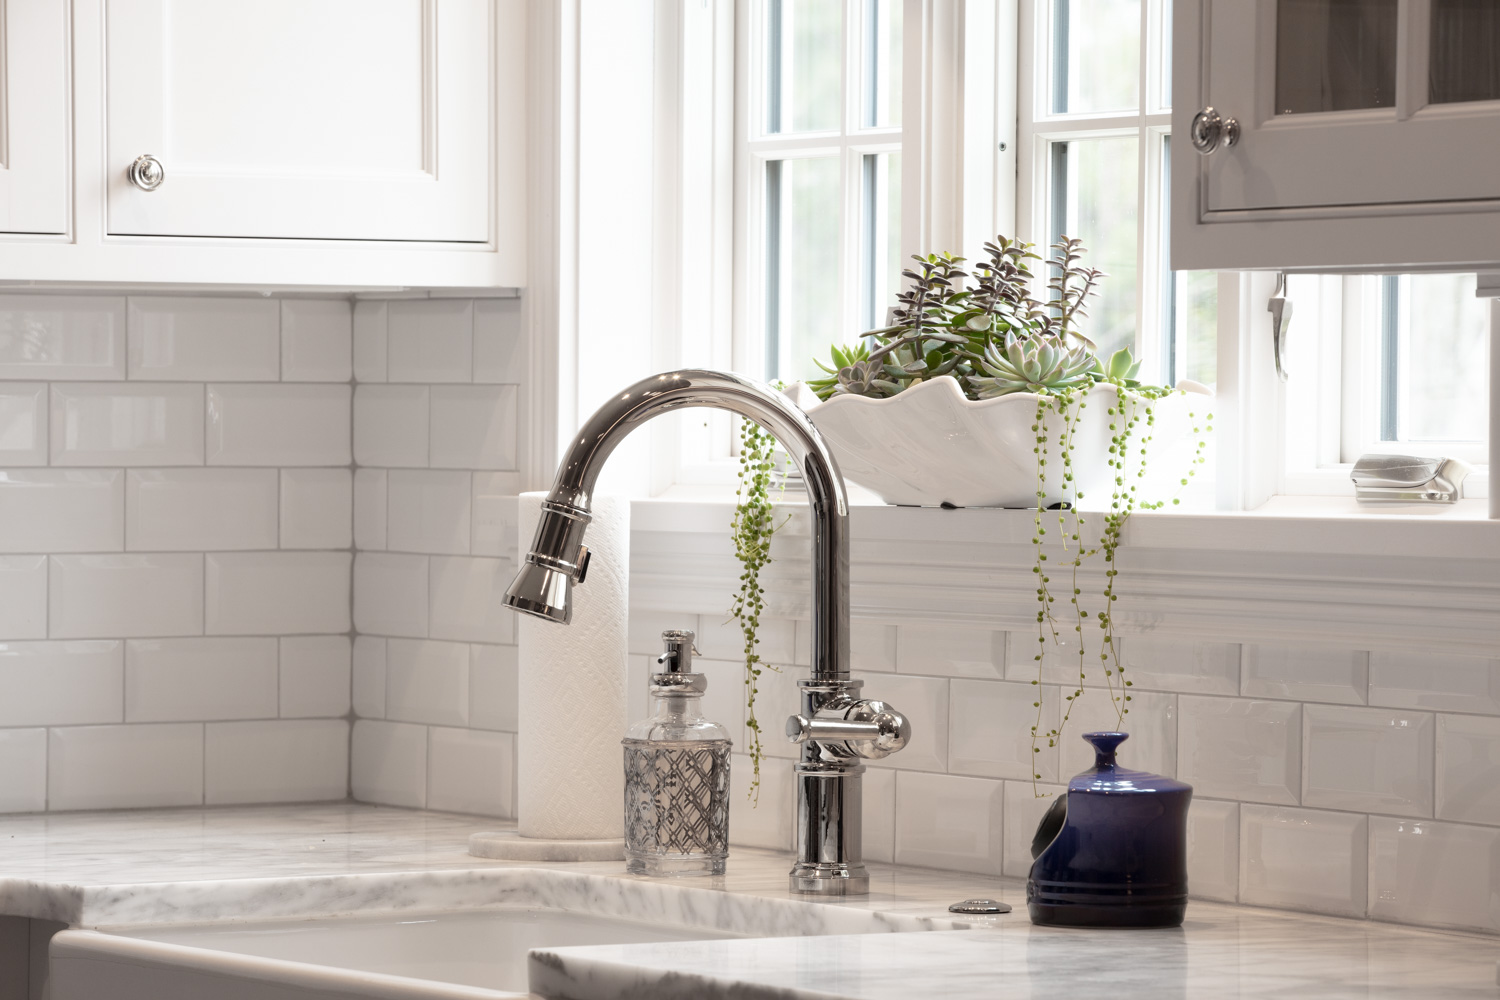 Stainless faucet and a plant on a window sill